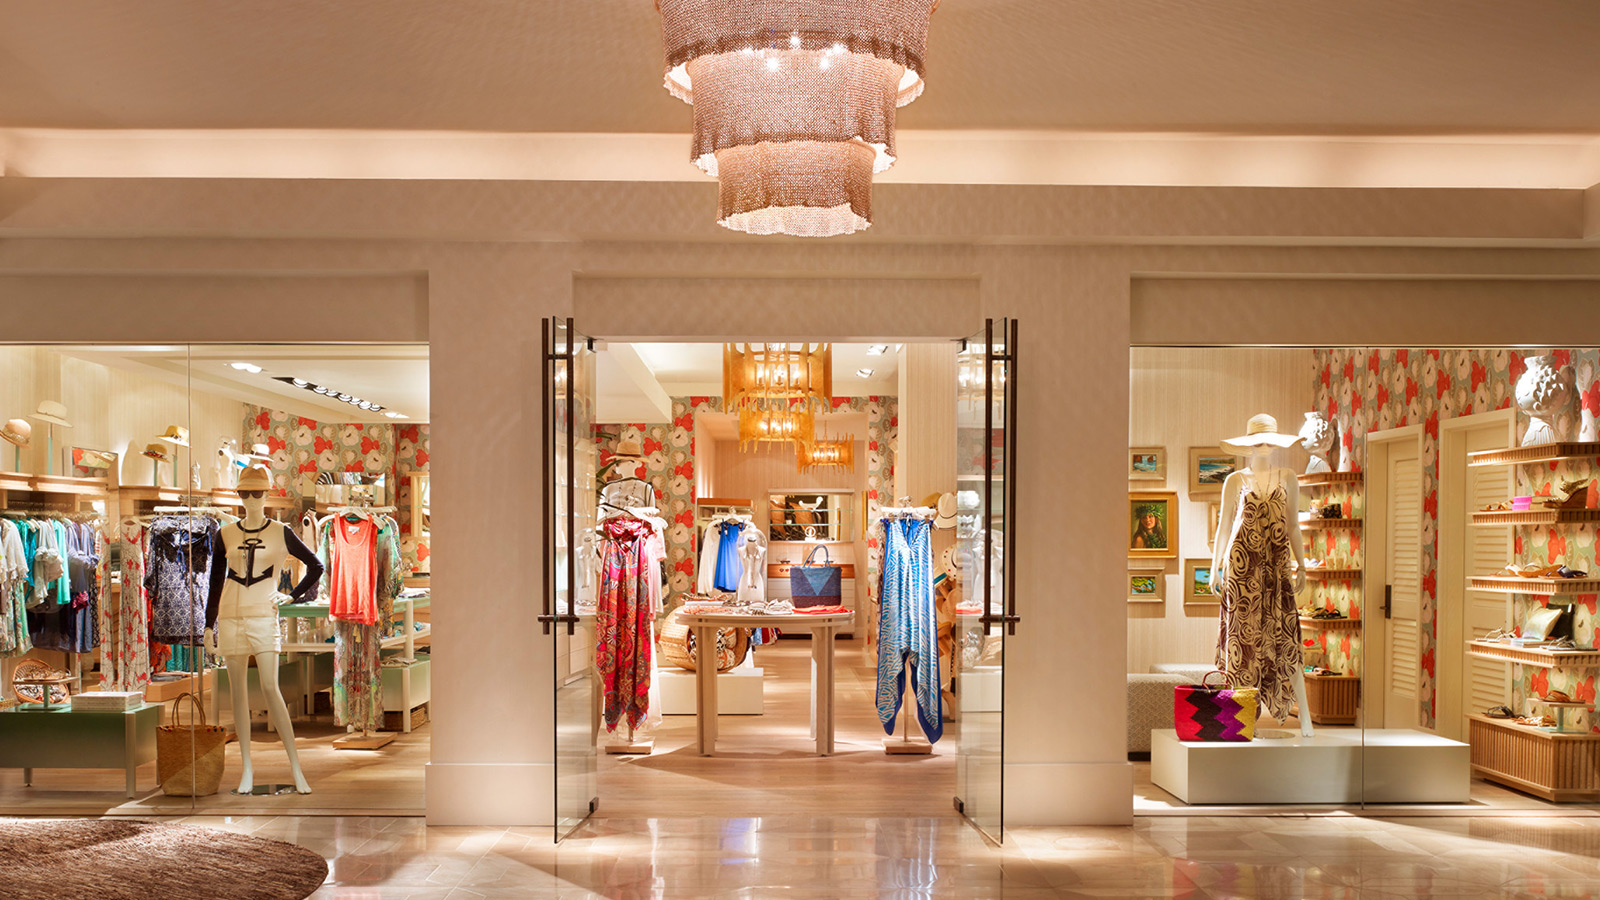 The Collection Of One A Kind Luxury Boutiques At Four Seasons Resort Lanai Located Just Off Reception Lobby Mae Pilina And Mua Loa